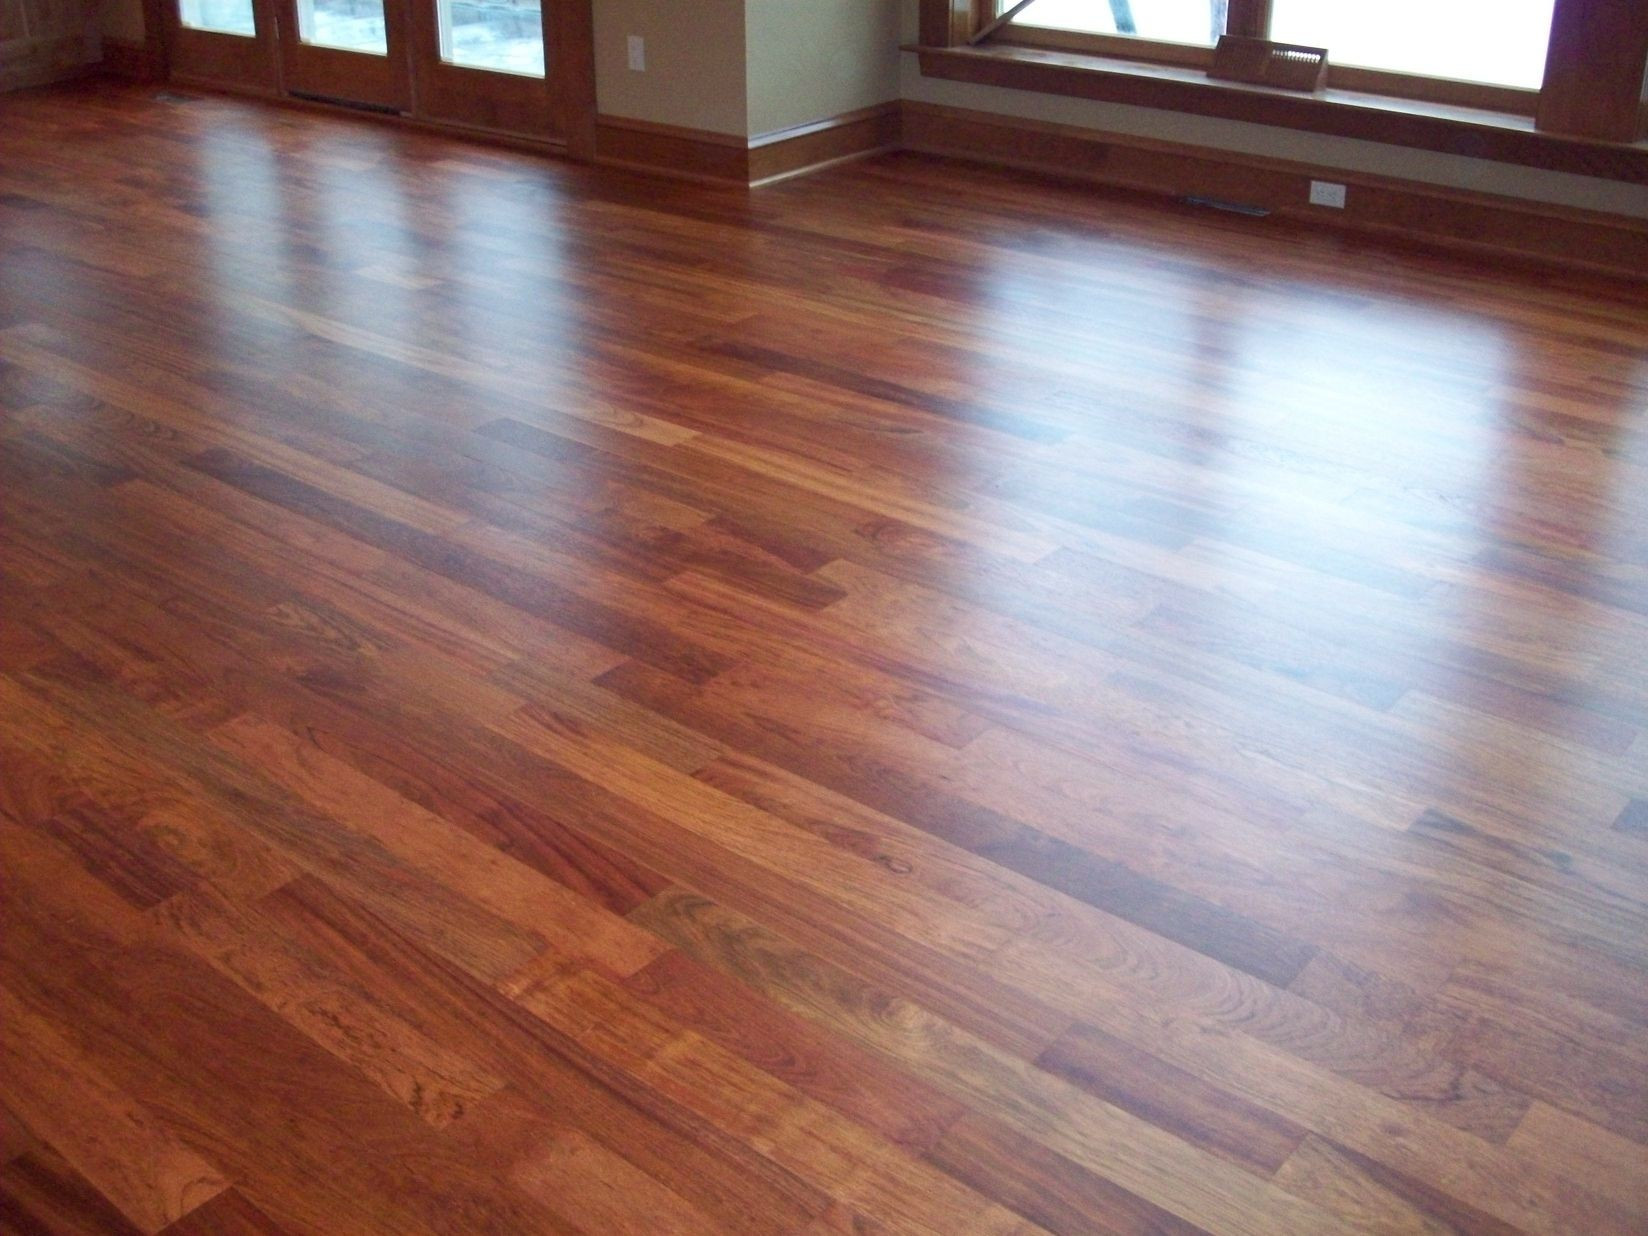 How Clean Engineered Hardwood Floors Of 19 Unique Best Mop to Clean Hardwood Floors Image Dizpos Com Pertaining to Best Mop to Clean Hardwood Floors New Incredible Flooring Hardwood Floor Steam Cleaners Reviews Best Mop